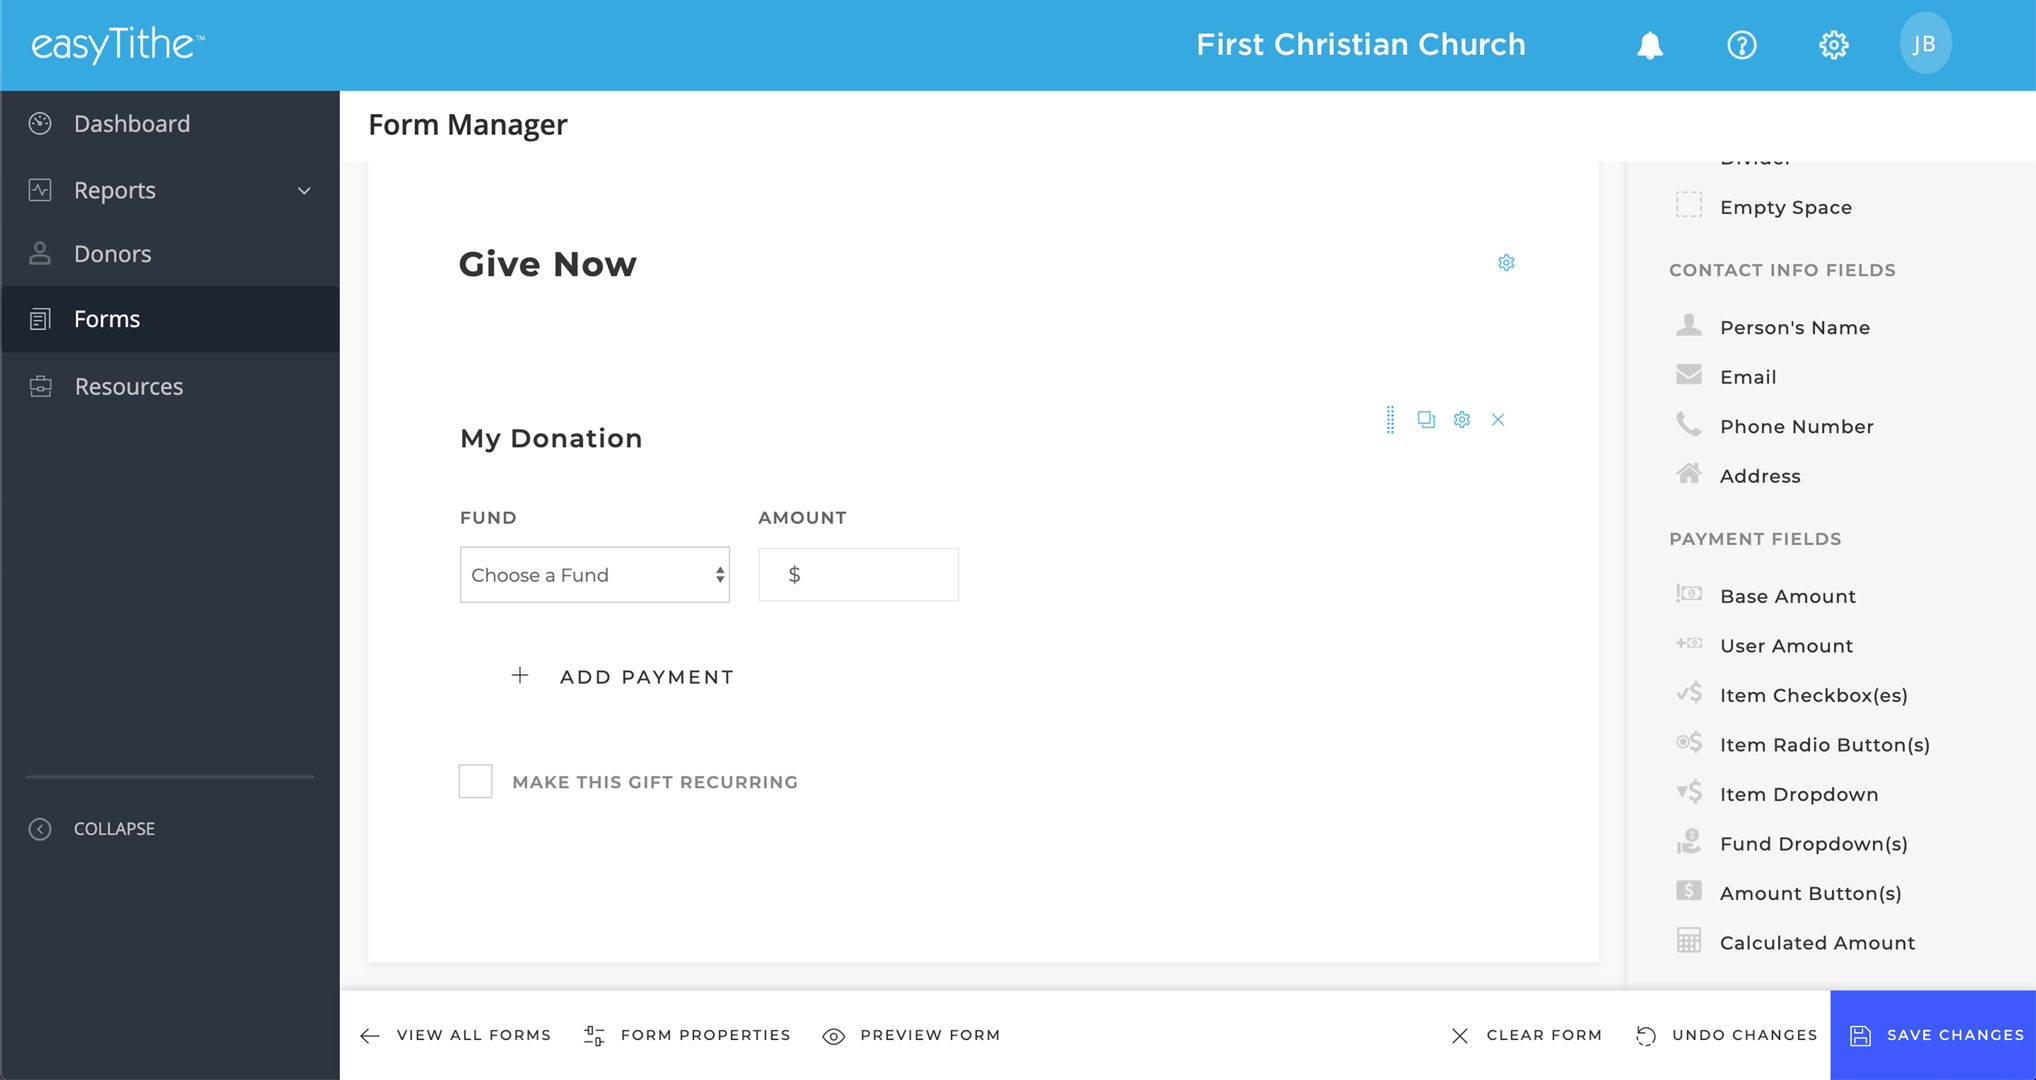 easyTithe donation form manager